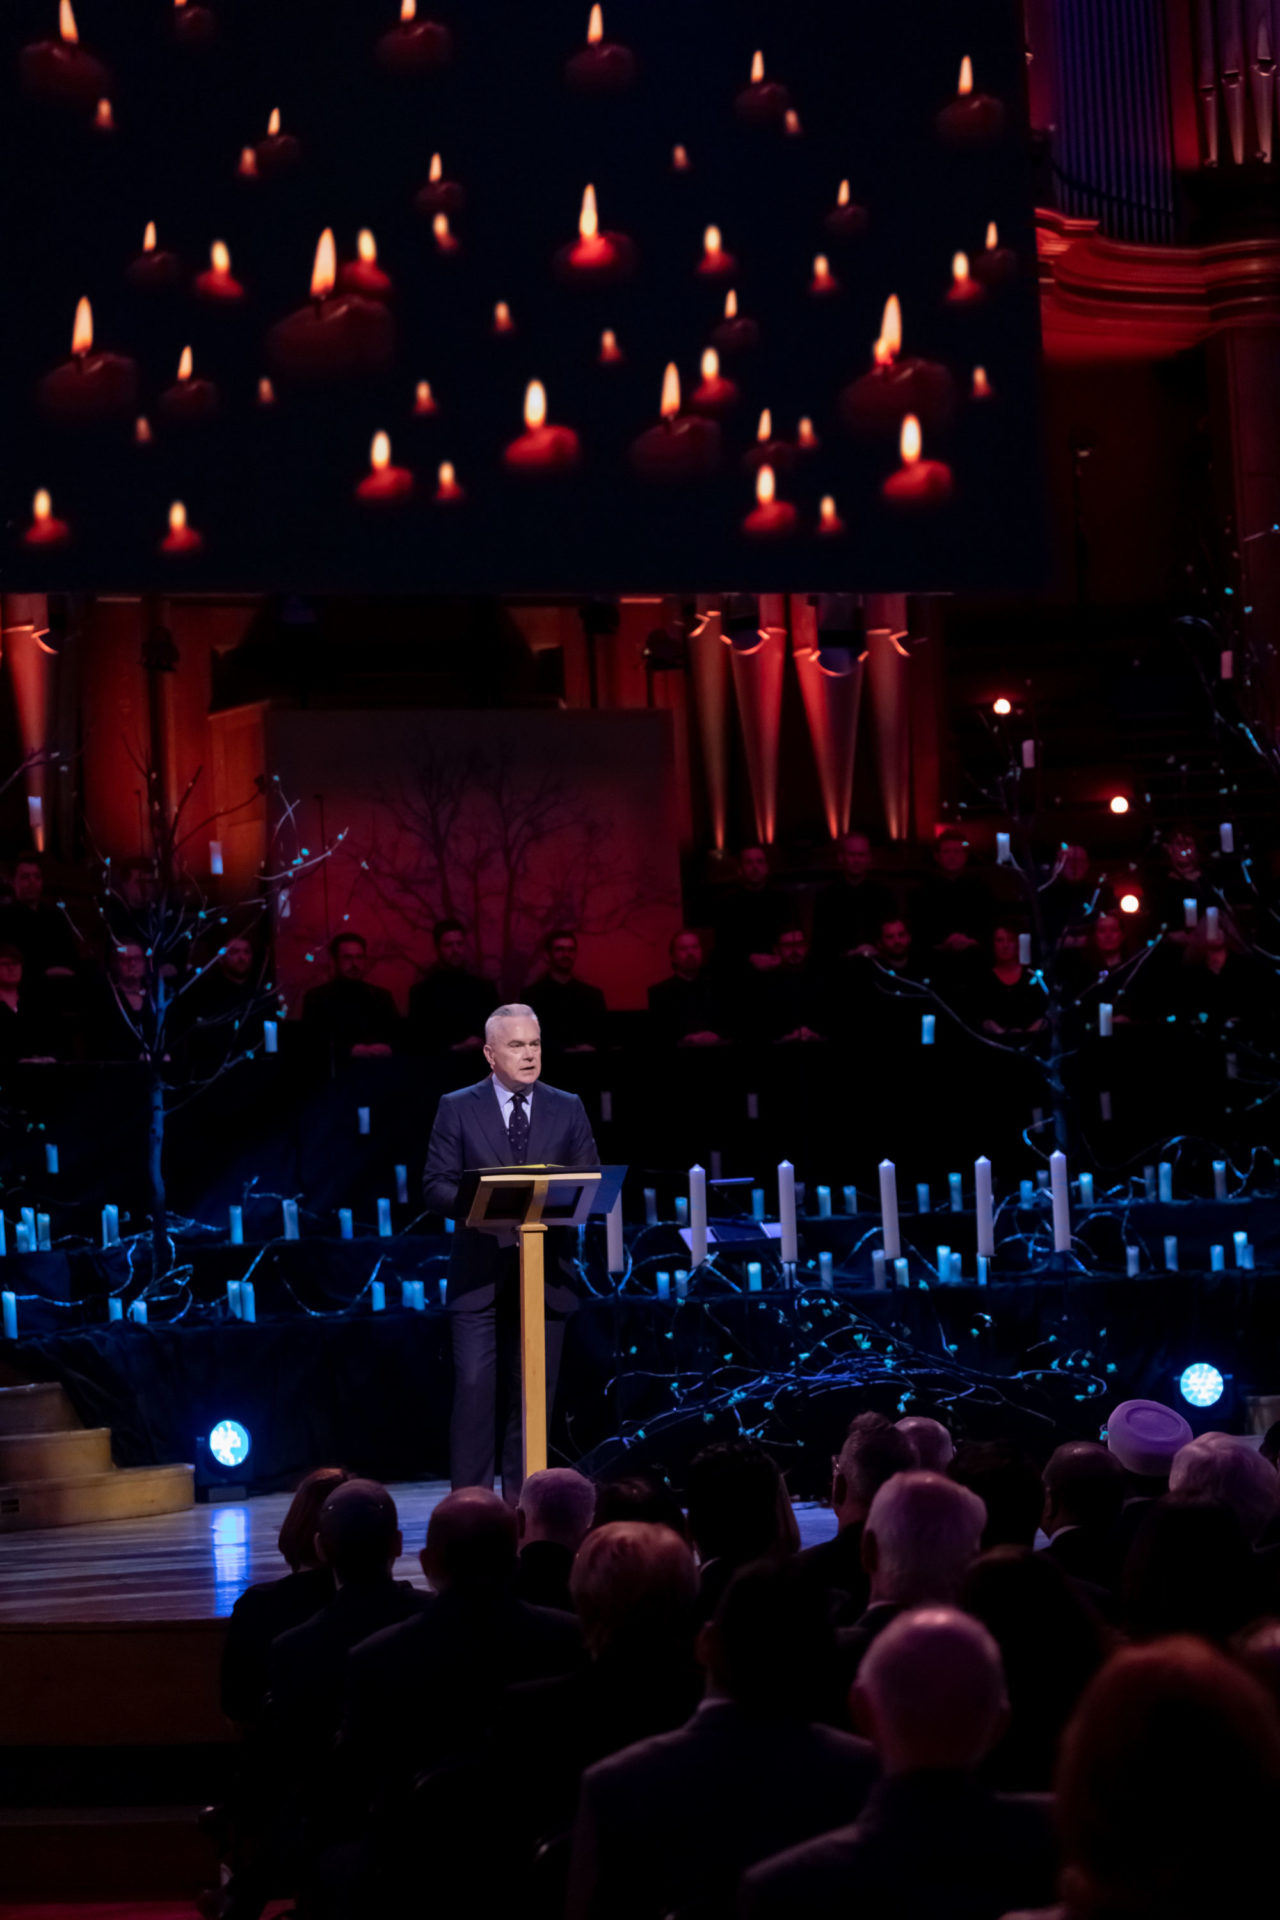 Huw Edwards narrates the event